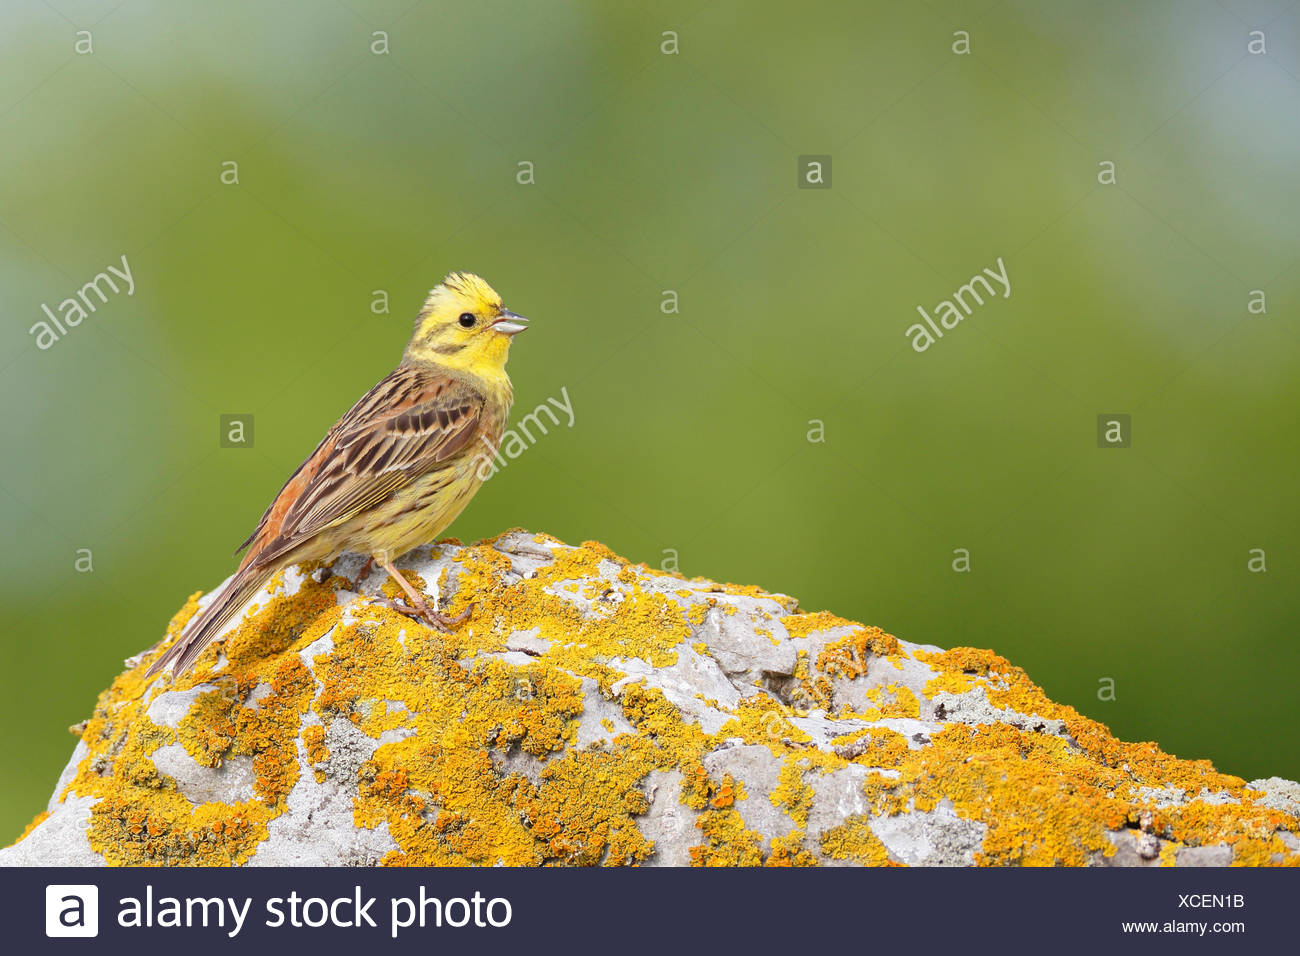 yellowhammer (Emberiza citrinella), male sitting on a lichened stone, Sweden, Oeland - Stock Image